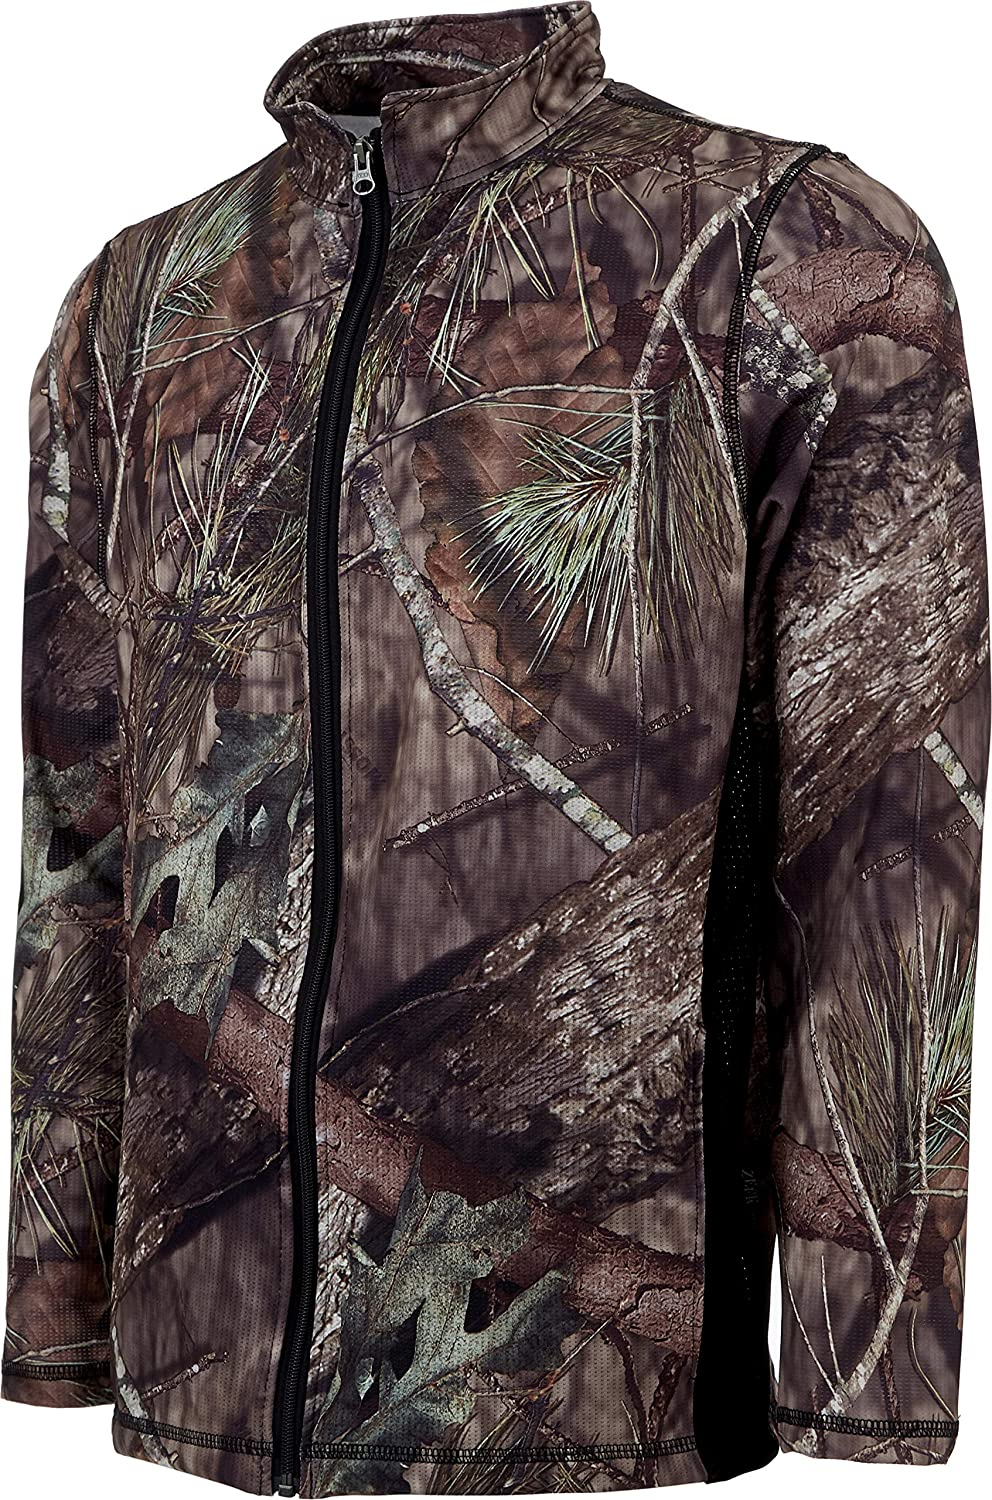 Zeek Outfitter Lightweight Breathable Camouflage Jacket